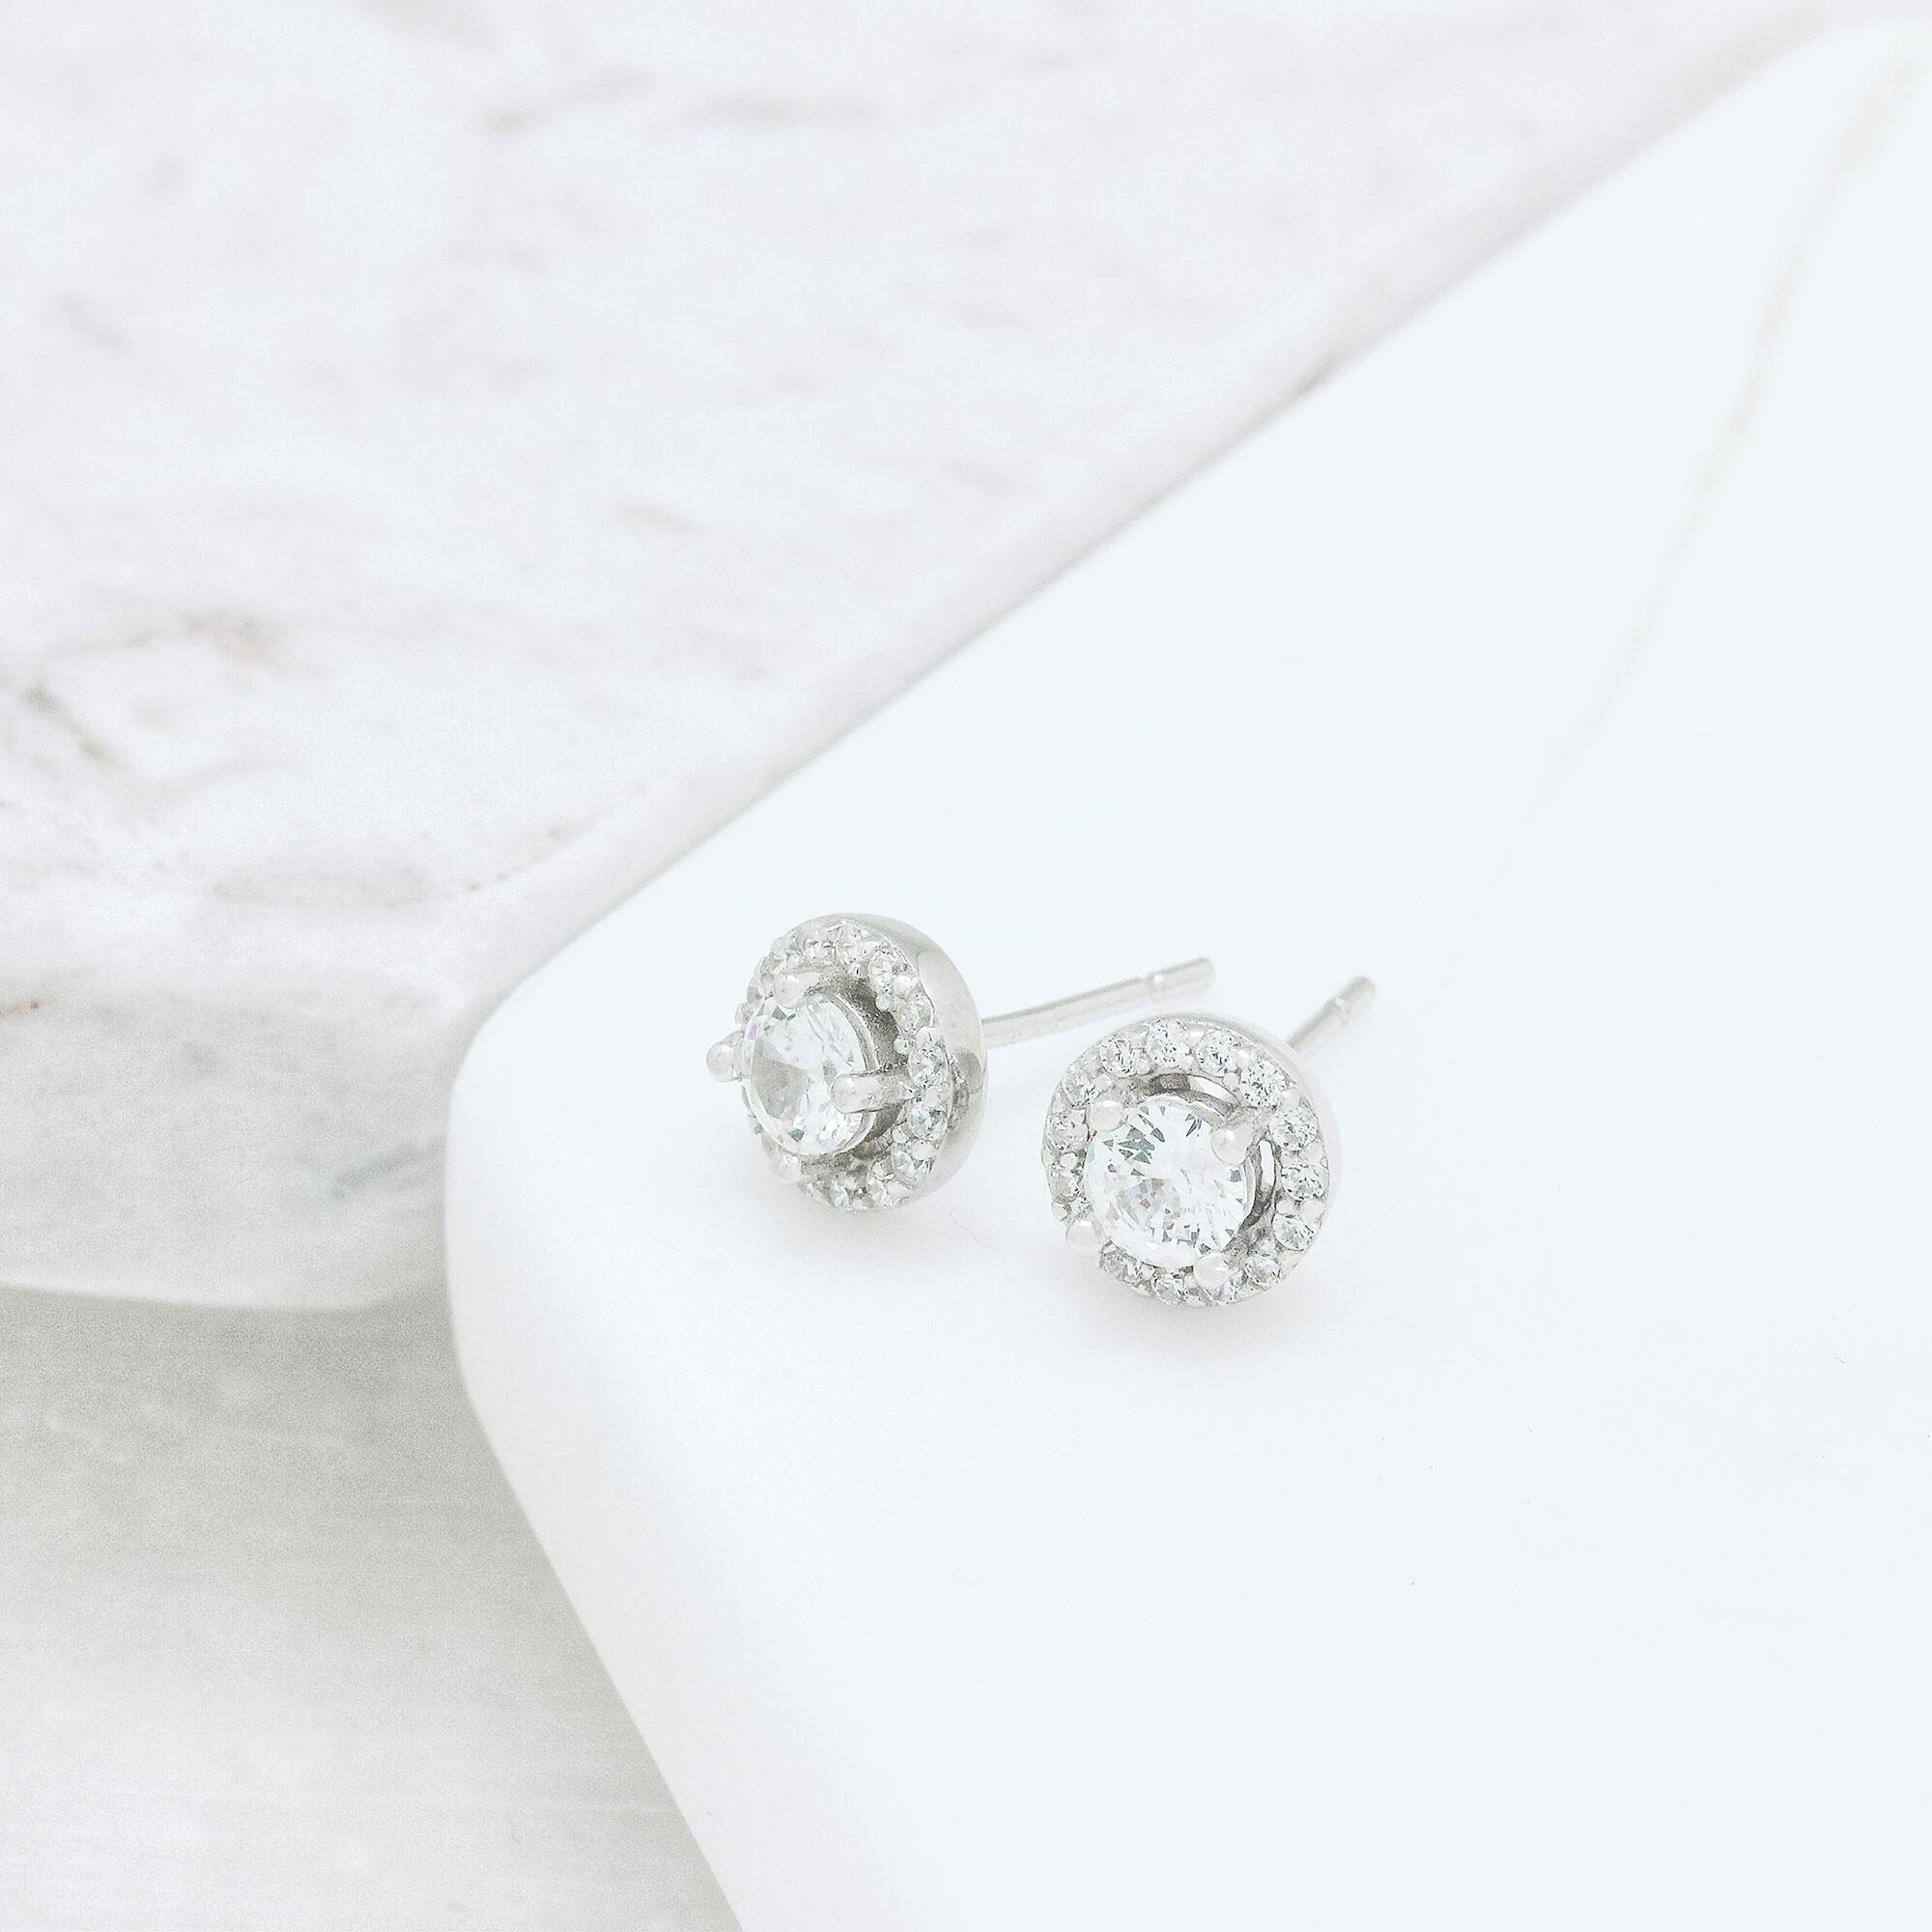 Spoil Cupid Rhodium-Plated Sterling Silver Cubic Zirconia Halo Stud Earrings, Center Stone 4mm